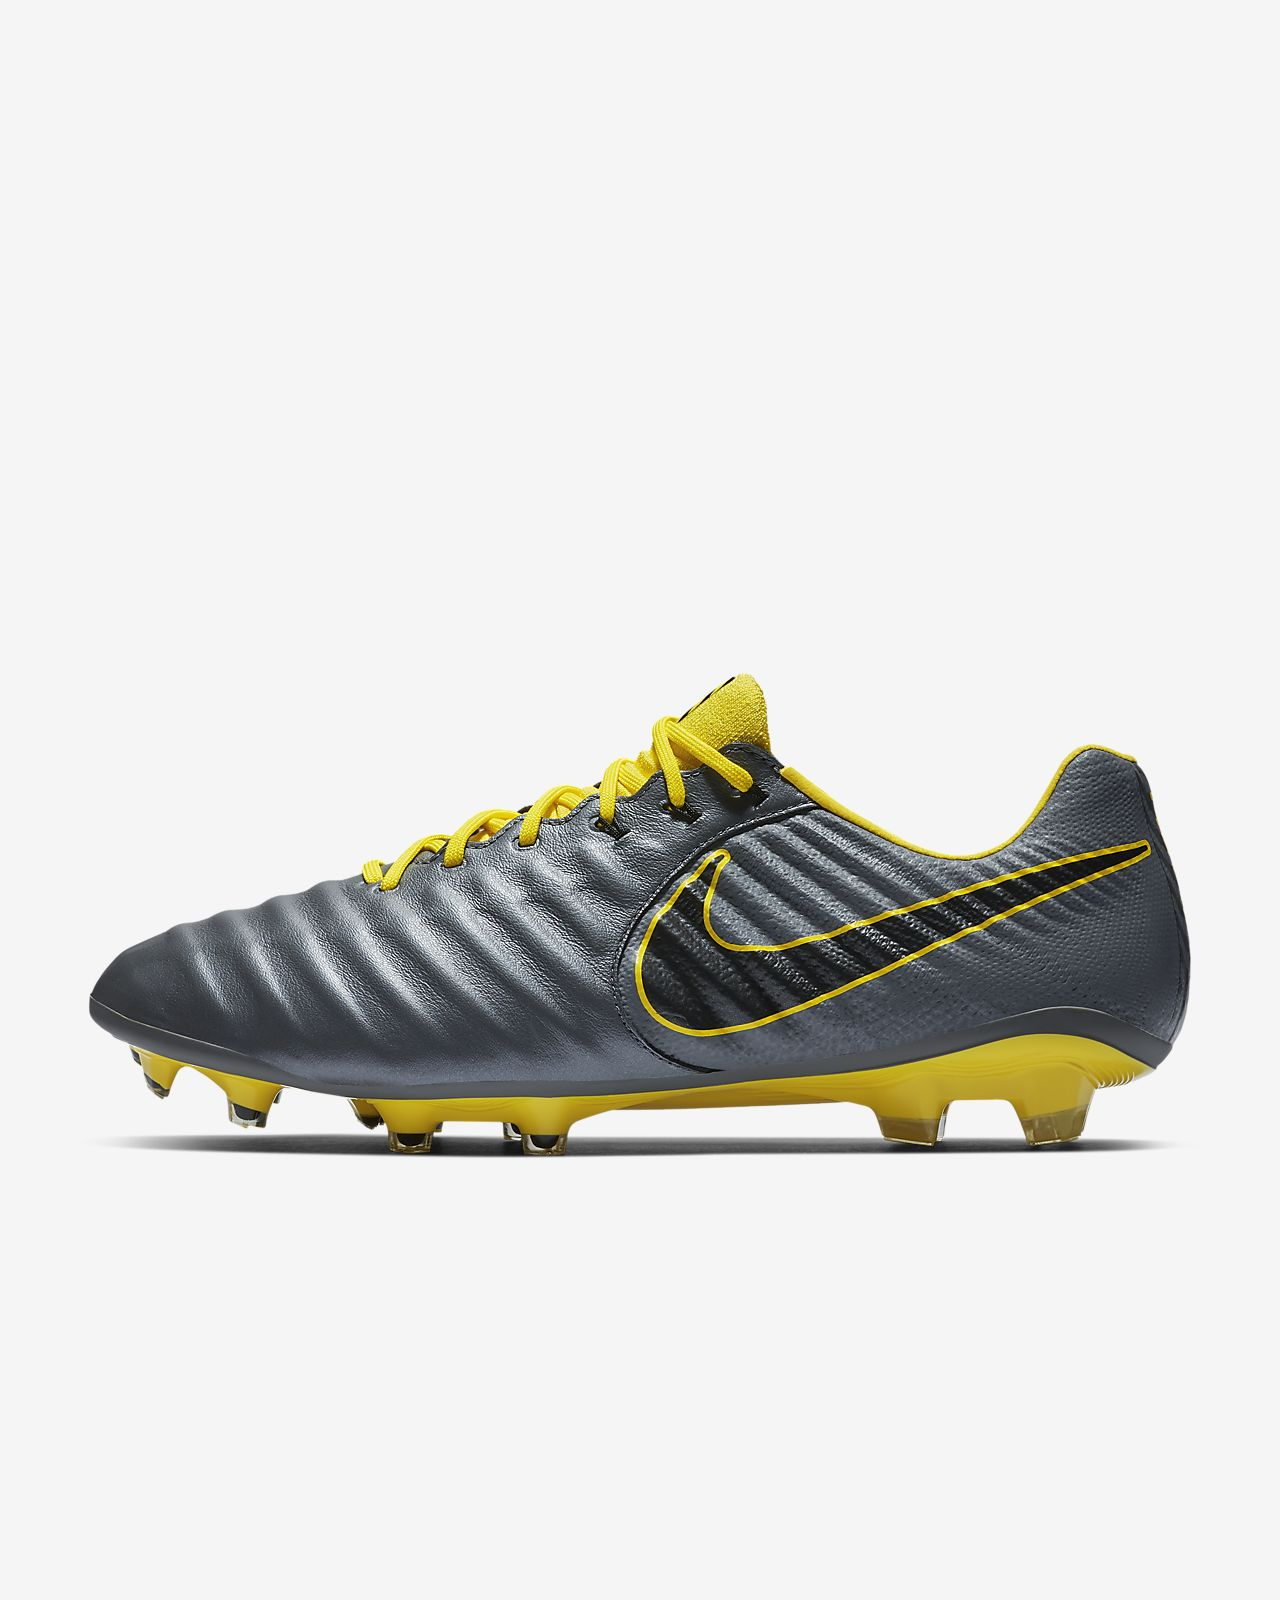 Chaussure de football à crampons pour terrain sec Nike Legend 7 Elite FG Game Over